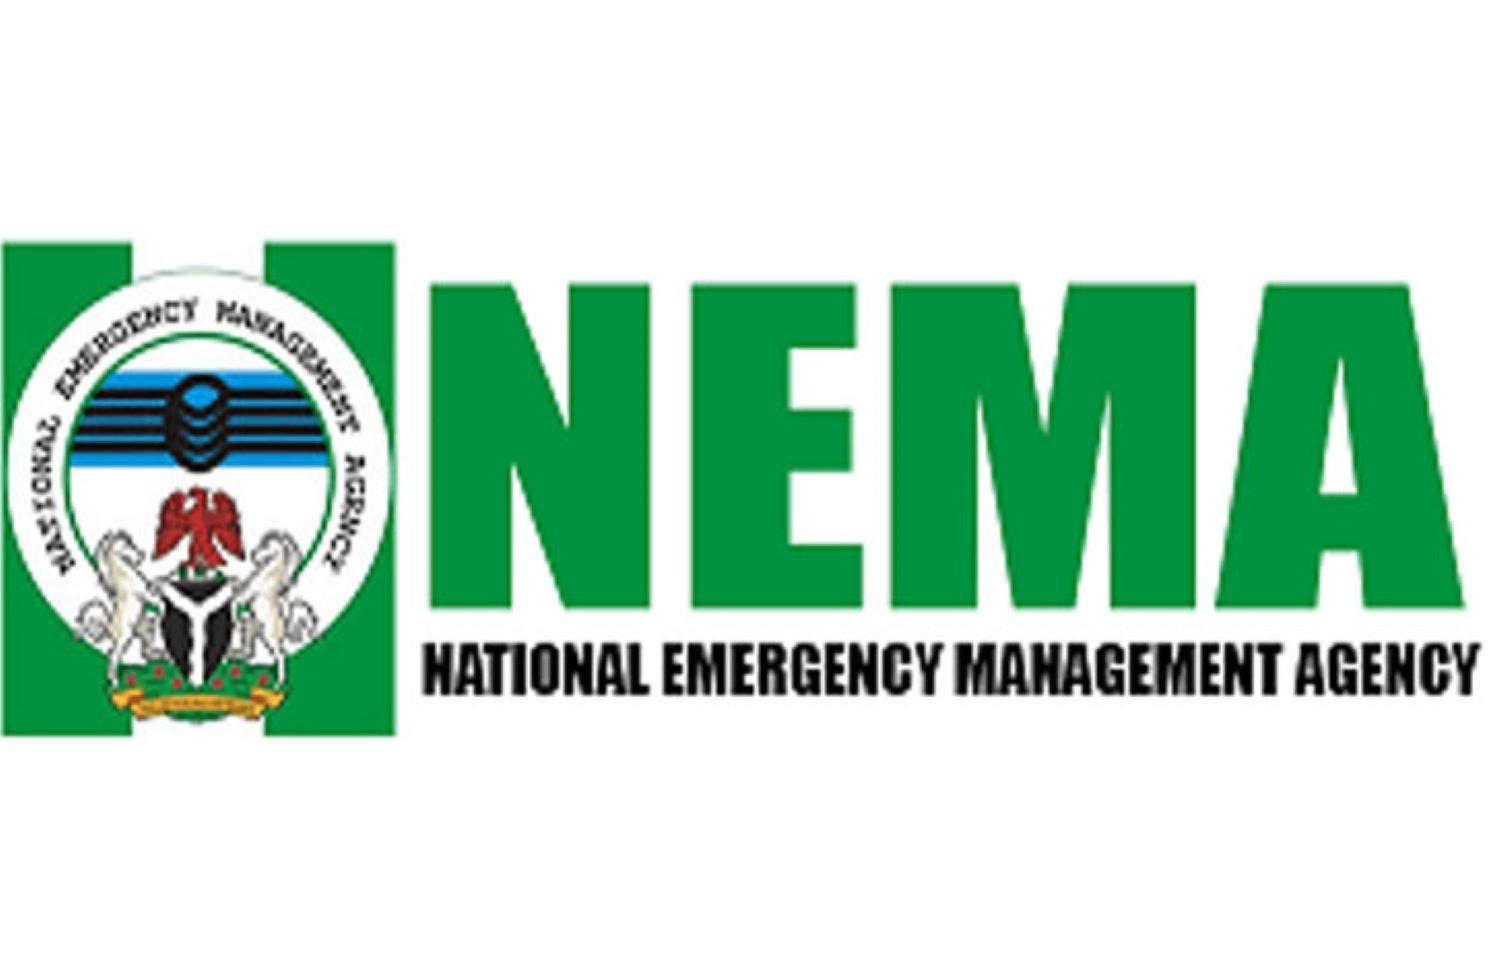 The National Emergency Management Agency (NEMA)